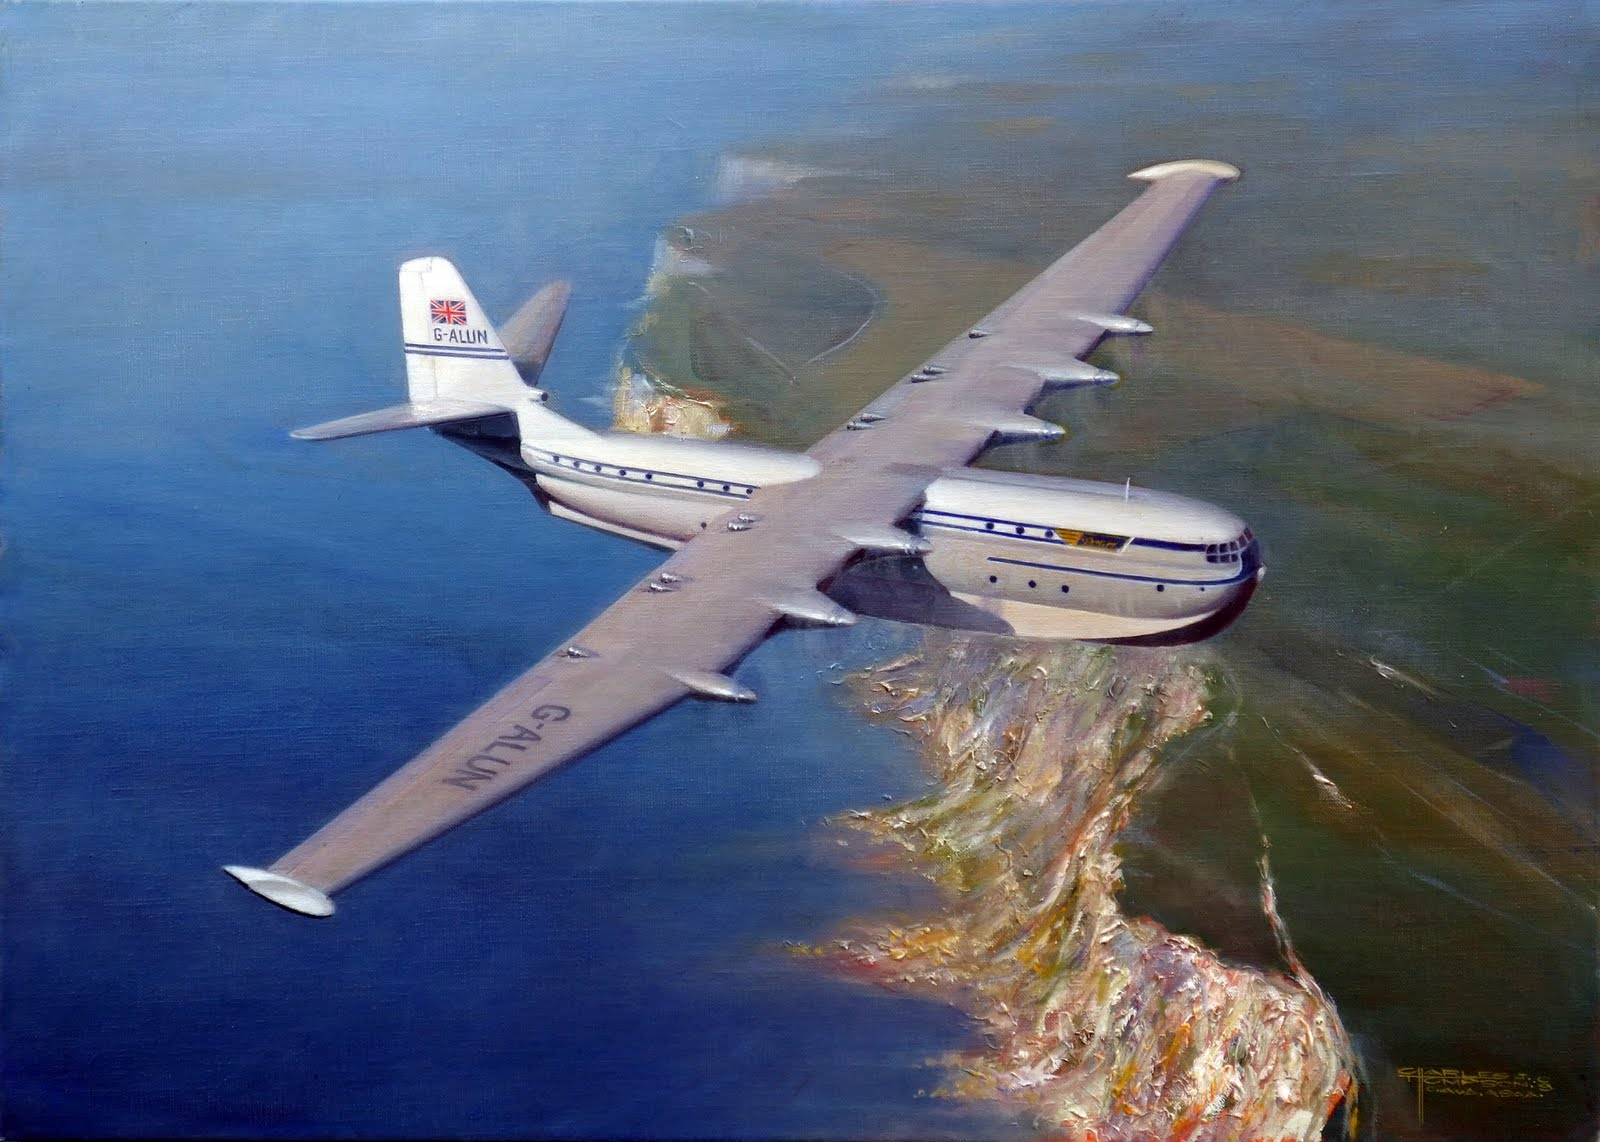 german helicopter manufacturers with Ag 600 China Builds The World S Largest Flying Boat on Pz6dae67f Cz5b1ff5a Titanium Tube Astmb338 additionally Ag 600 China Builds The World S Largest Flying Boat furthermore Christmas star dna small version on back tshirt 235490621266754994 further Showthread additionally Mesa verde t shirt 235334006704180650.